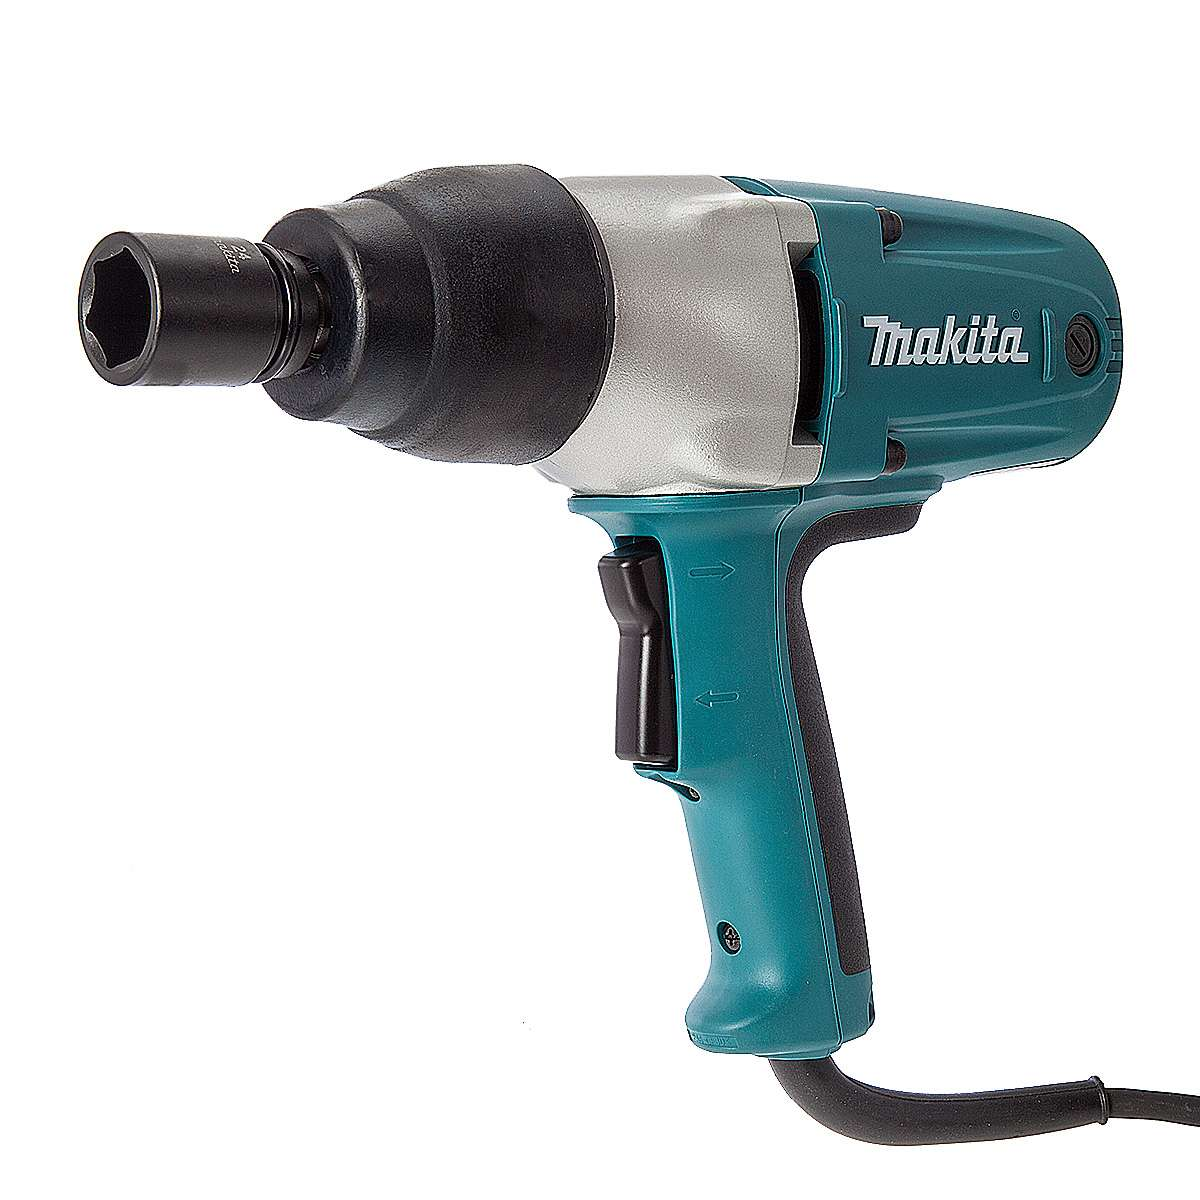 Makita impact wrenches power tools the home depot.